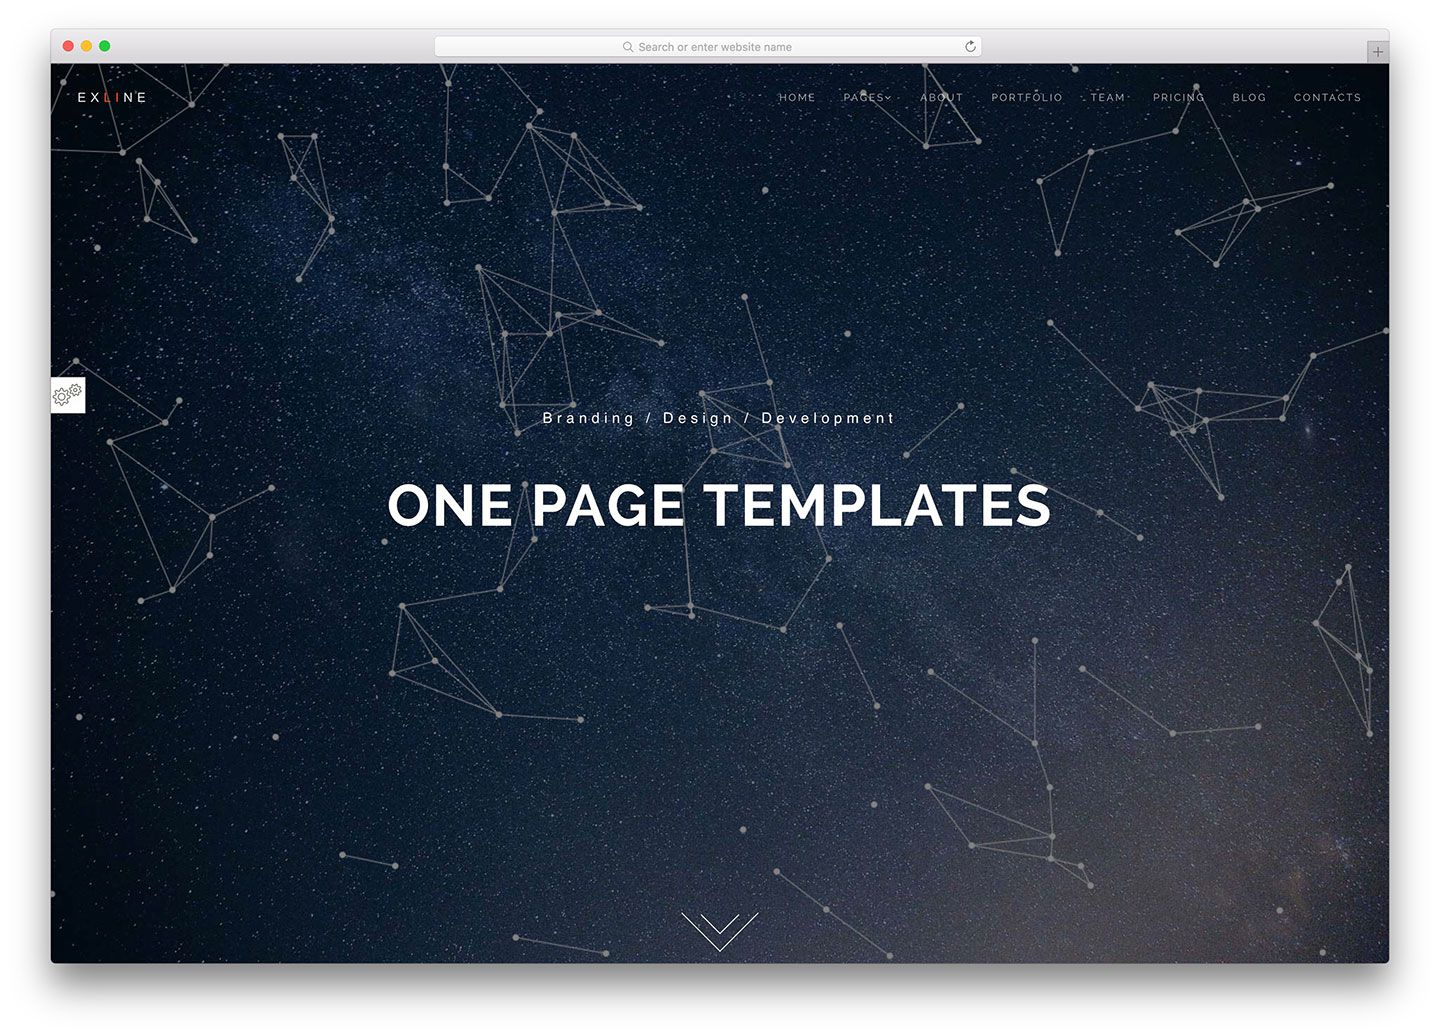 005 Impressive One Page Website Html Template Free Download Image  Cs Simple With ResponsiveFull